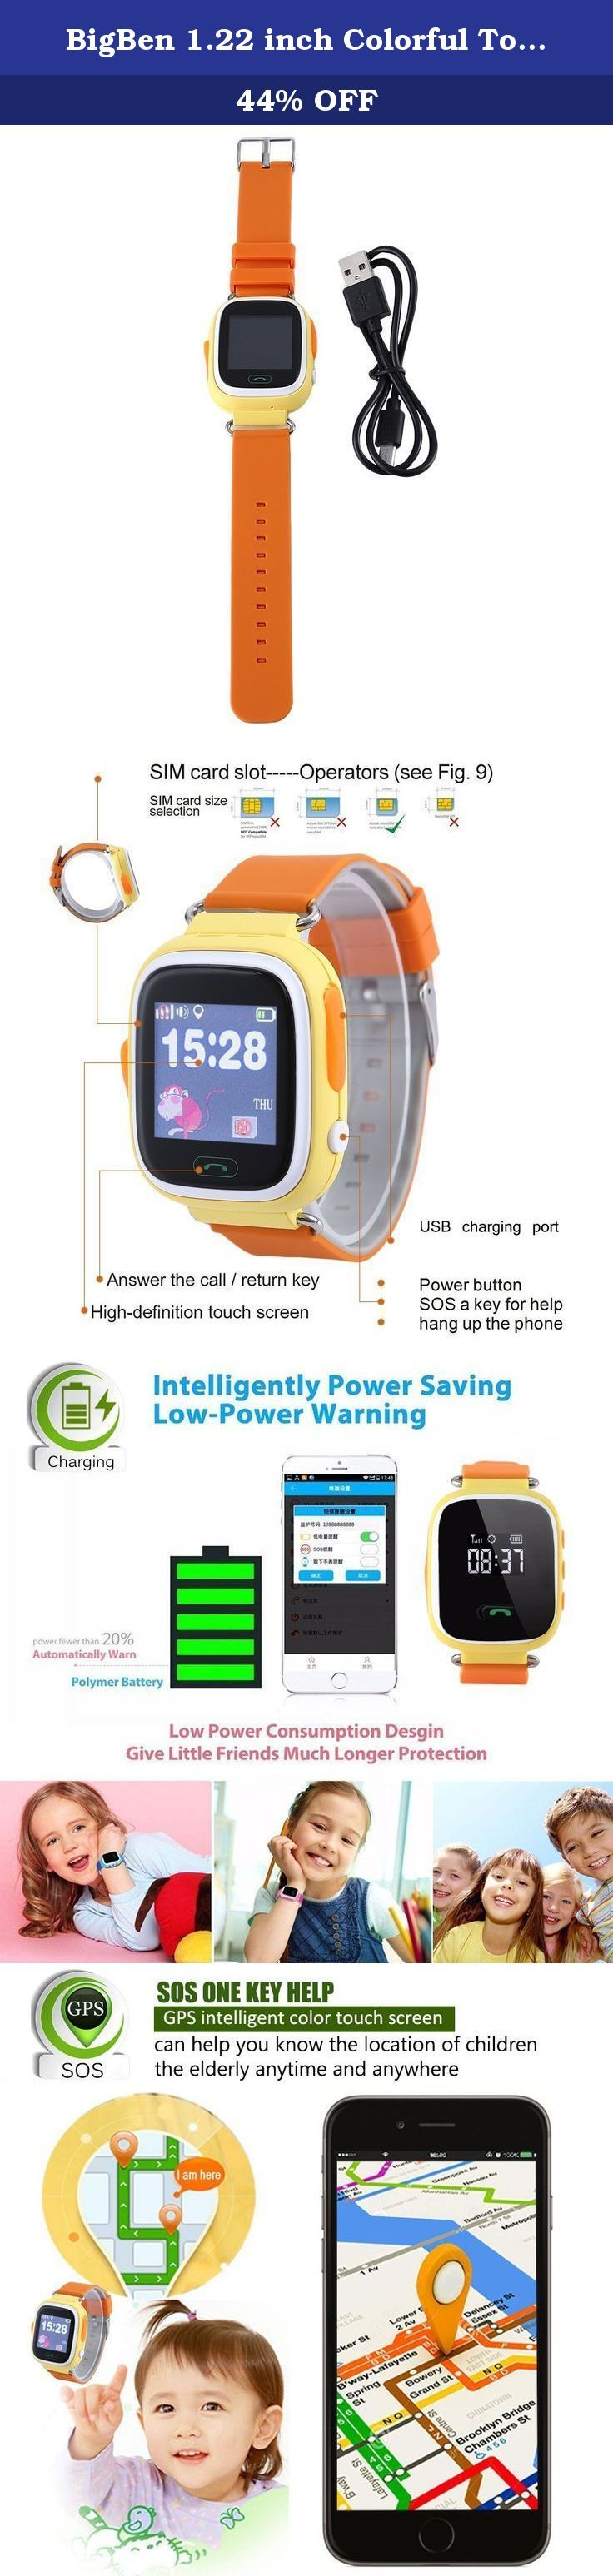 BigBen 1.22 inch Colorful Touch Screen Smartwatch Phone with SOS Call GPS Safe Anti Lost Monitor Kids (Jacinth). Parameters: Safety Item: Baby Smart Watch SIM card : Micro SIM card GPS locating: GSM GPRS locating Chip CPU: MTK2503D, 260MHZ Language : English, Simplified Chinese, Traditional Chinese Battery: 400mAH lithium battery standby time: 3 days App system : Android and iOS Band material: silicone Package weight: 0.146 kg Product Size(L x W x H): 9.25 x 1.57 x 0.59 inches Package Size…